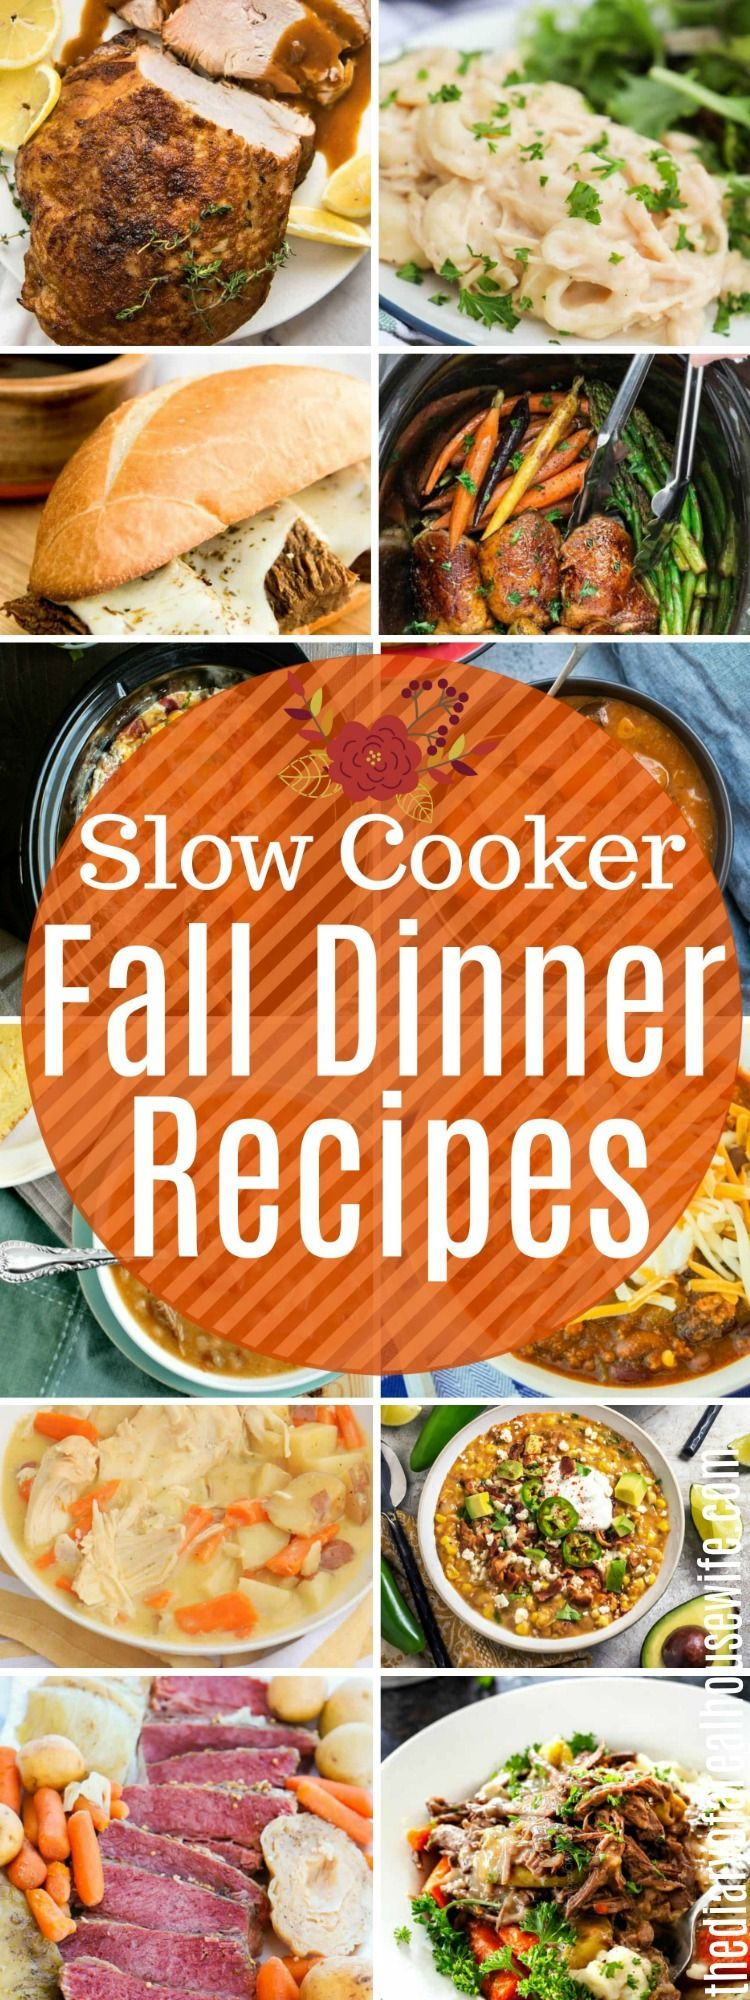 These Slow Cooker Fall Dinner Recipes are some of the best. #easyrecipe #slowcooker #fallrecipe #falldinnerrecipes